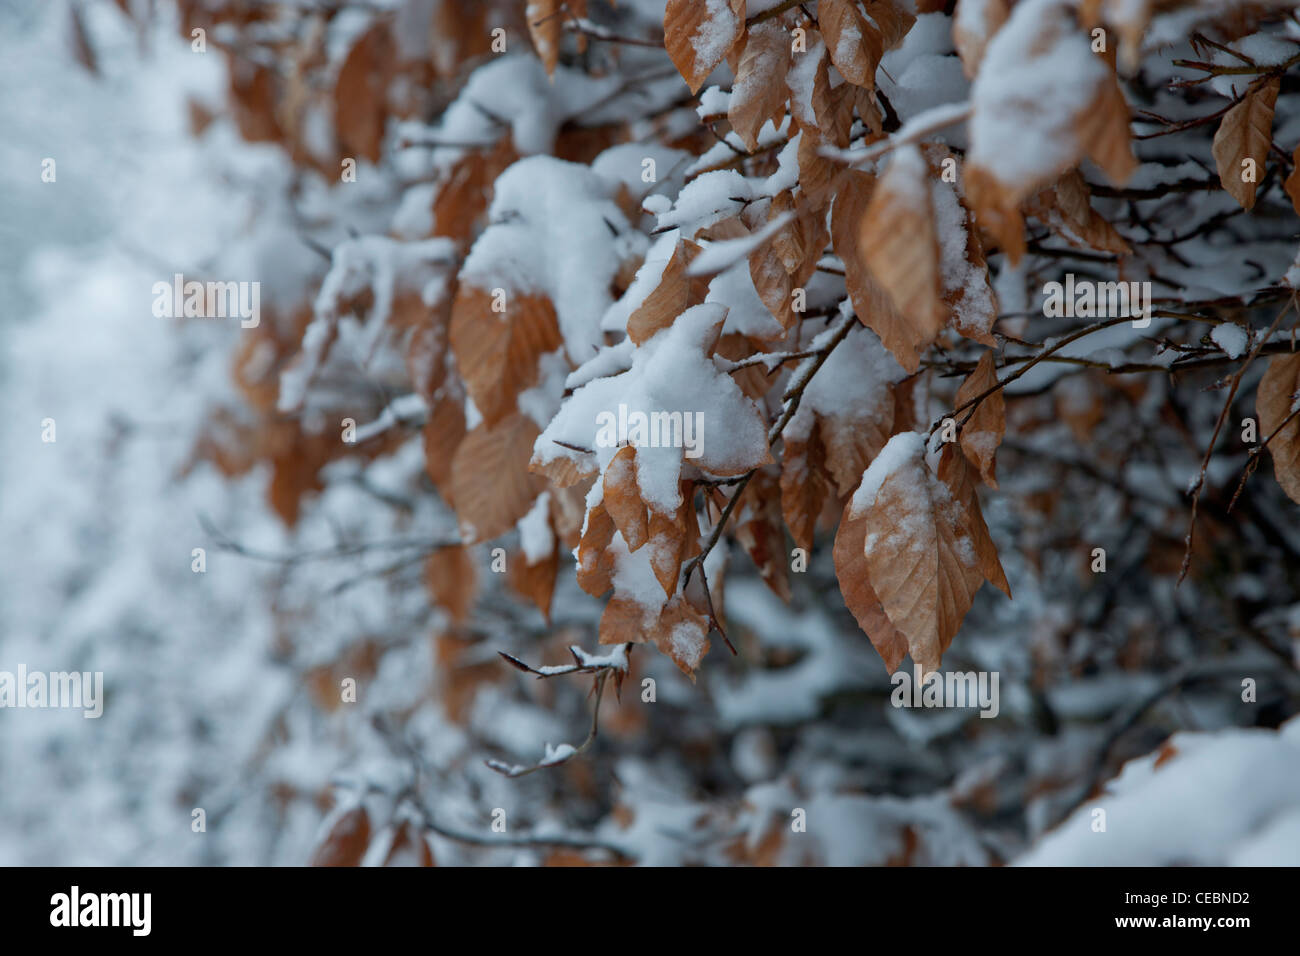 Snow has fallen and settled on a hedgerow with dry autumn coloured leaves. Stock Photo